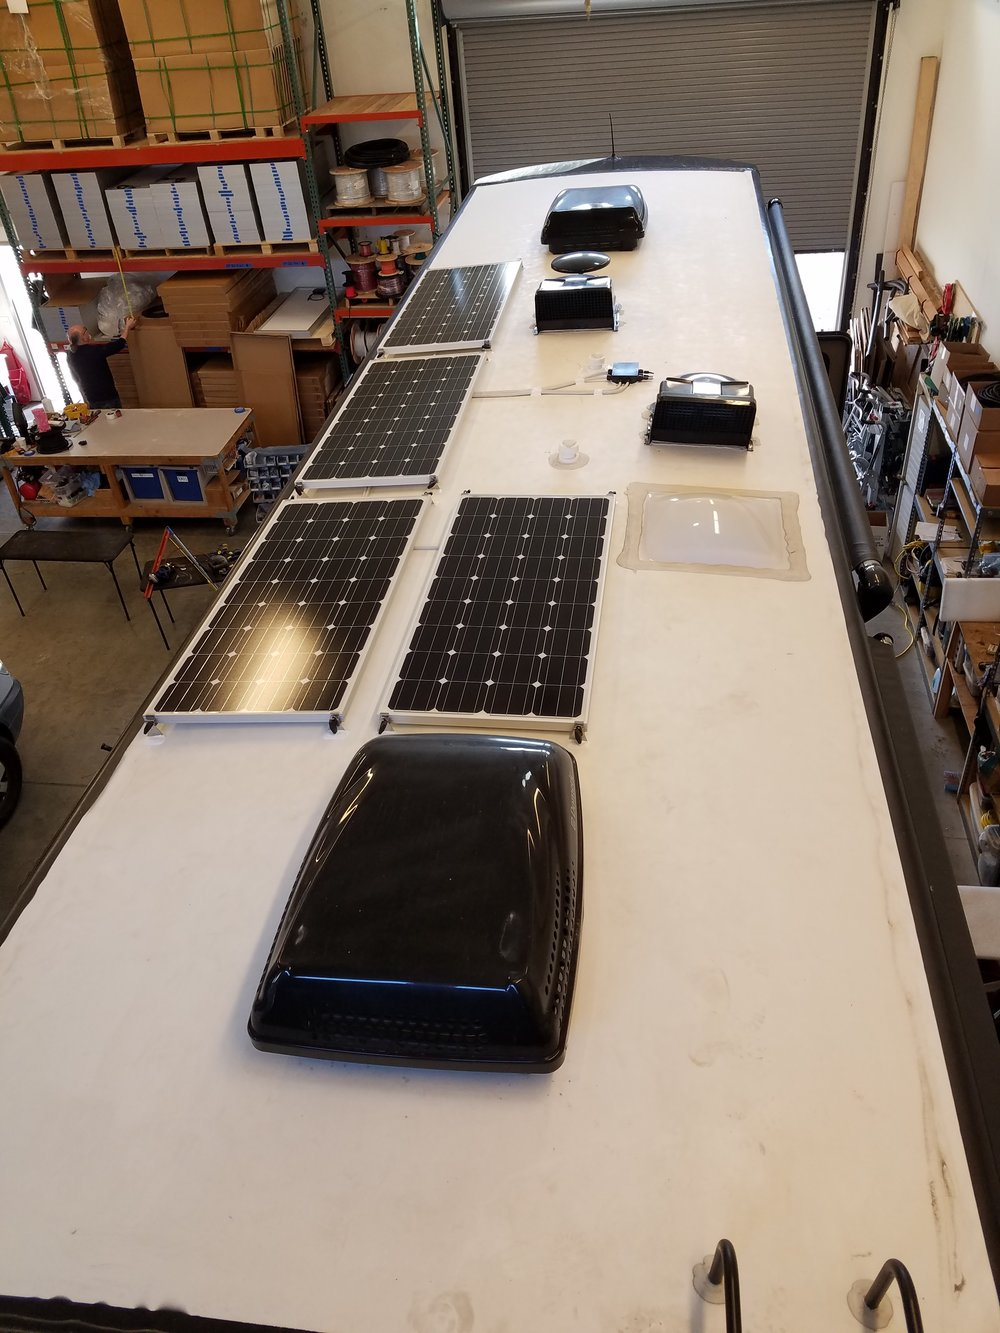 Equipment Added:   4x SF160 Solar Panels 1x Roof C-Box 1x SunRunner Victron MPPT 70A System Core 1x Victron MPPT Control System Monitor 1x Magnum MS2000 Inverter/Charger